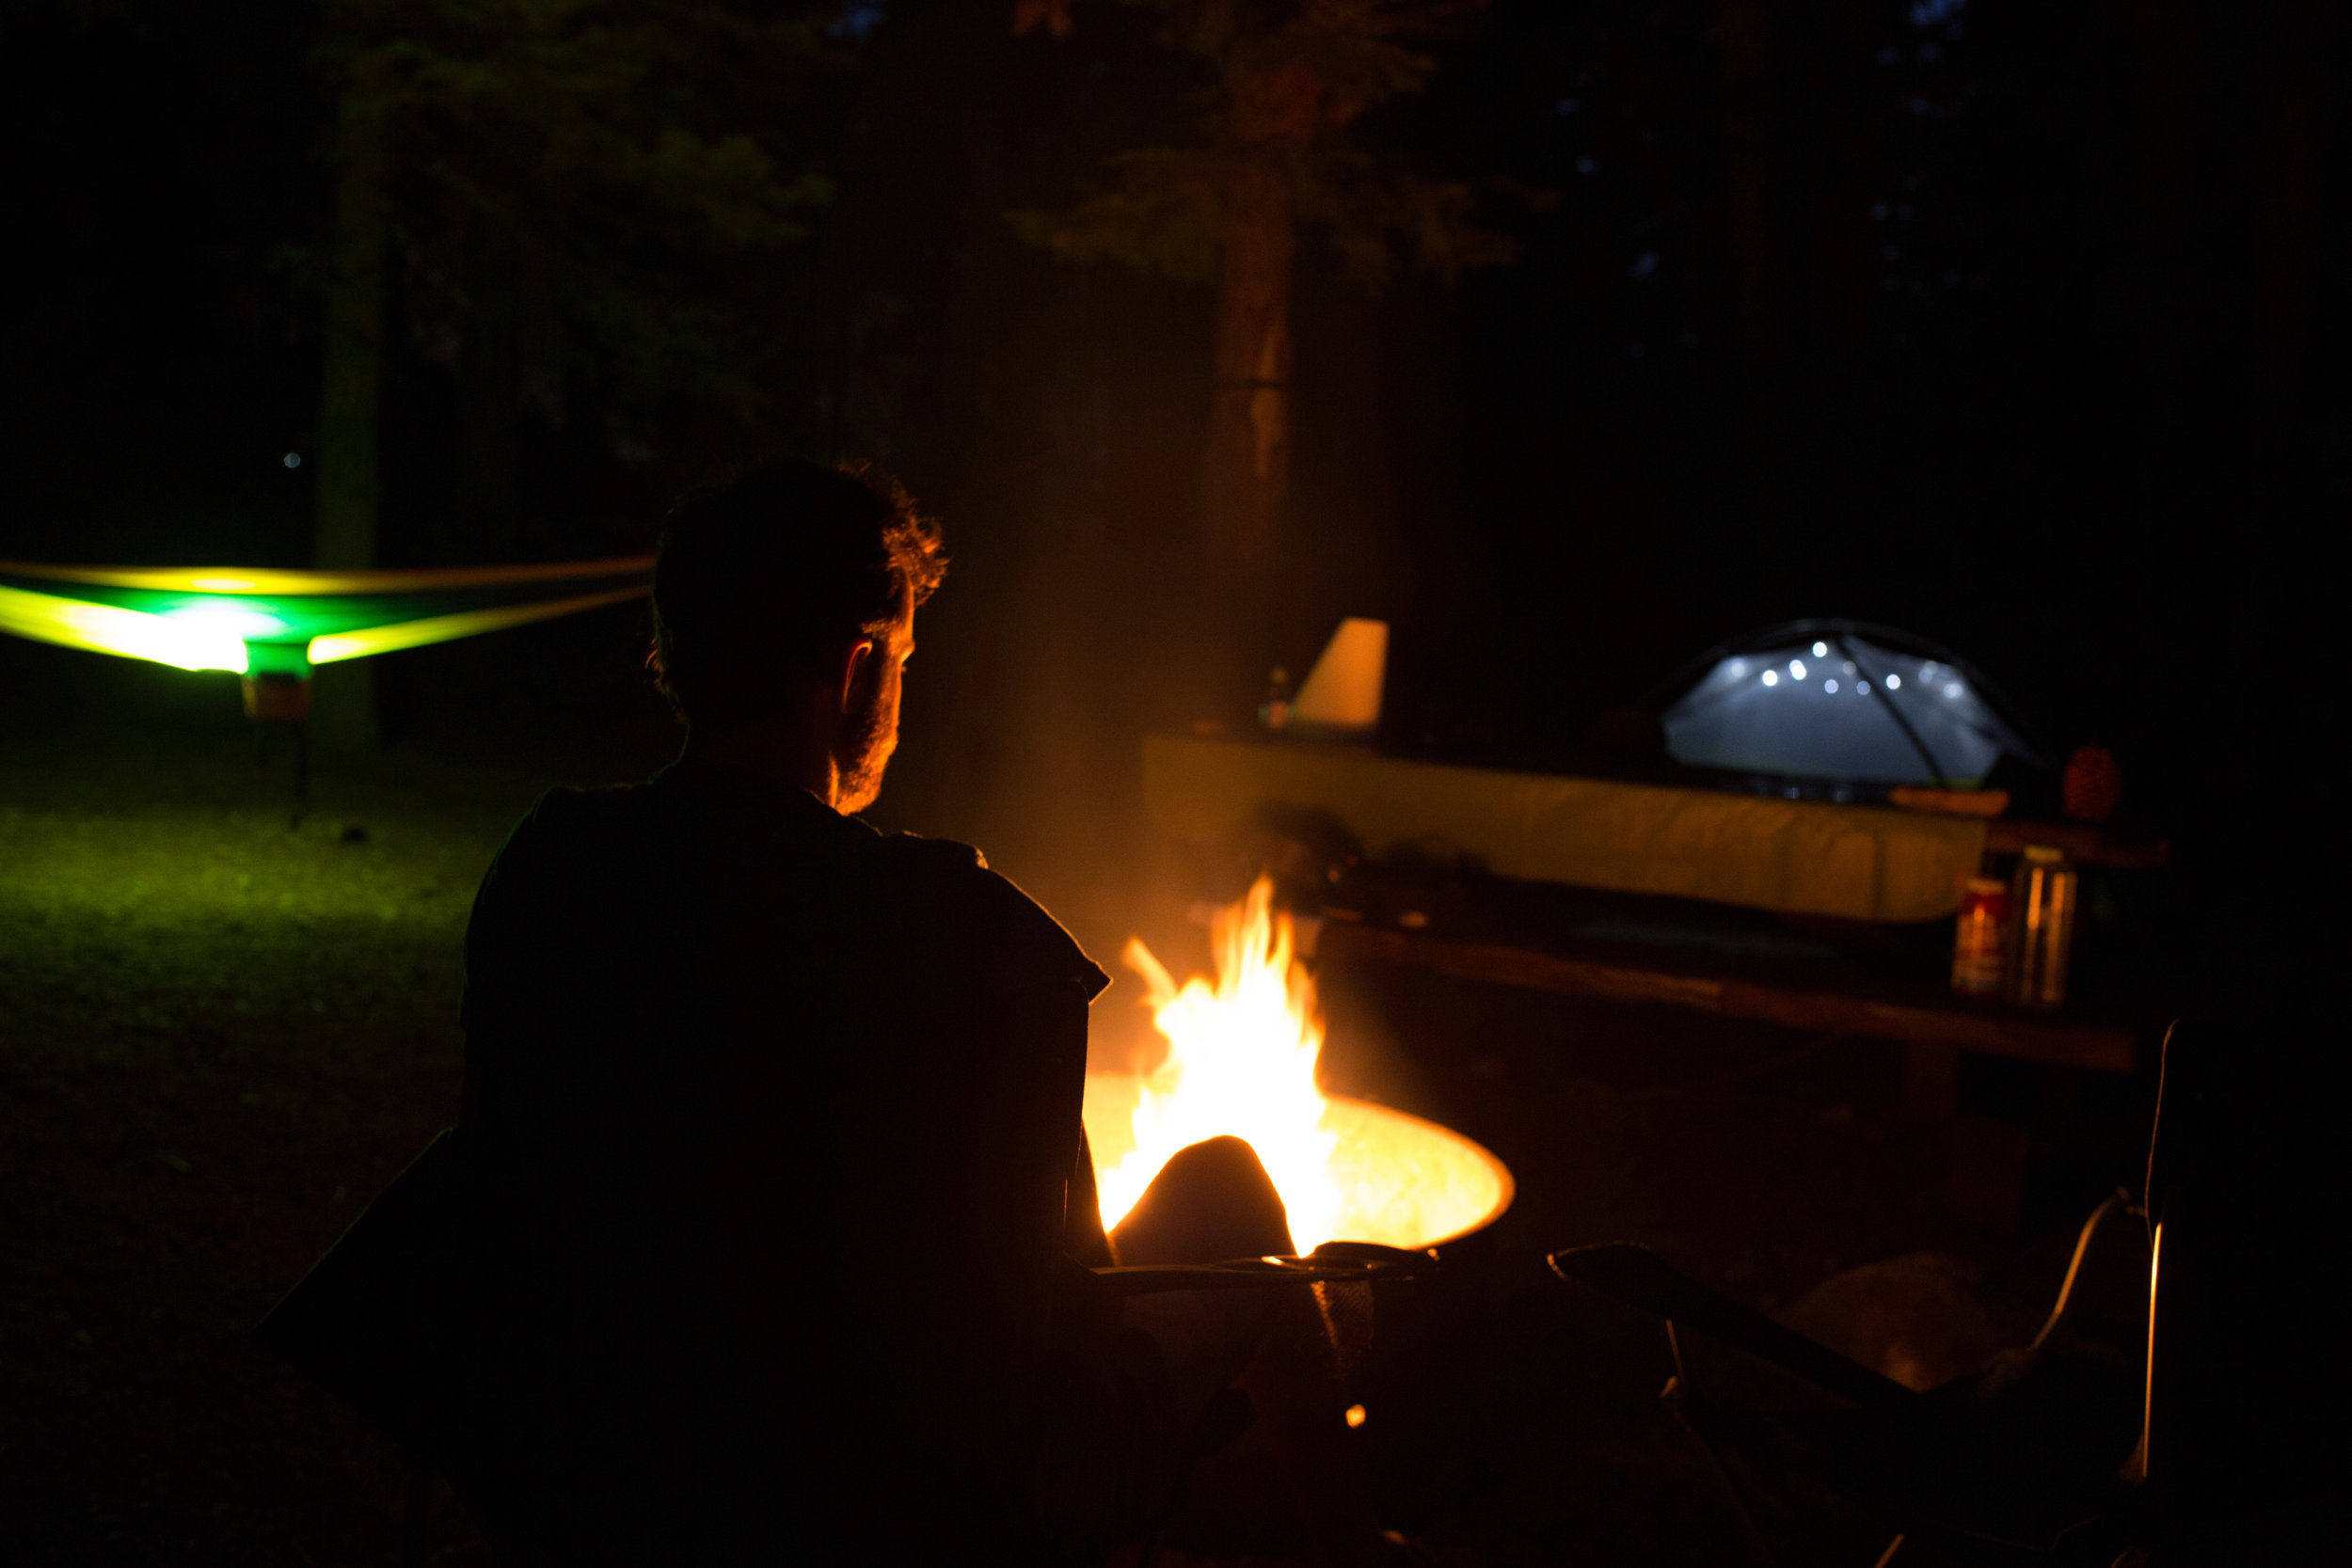 Camping at a campground around Lake Tahoe's perimeter.